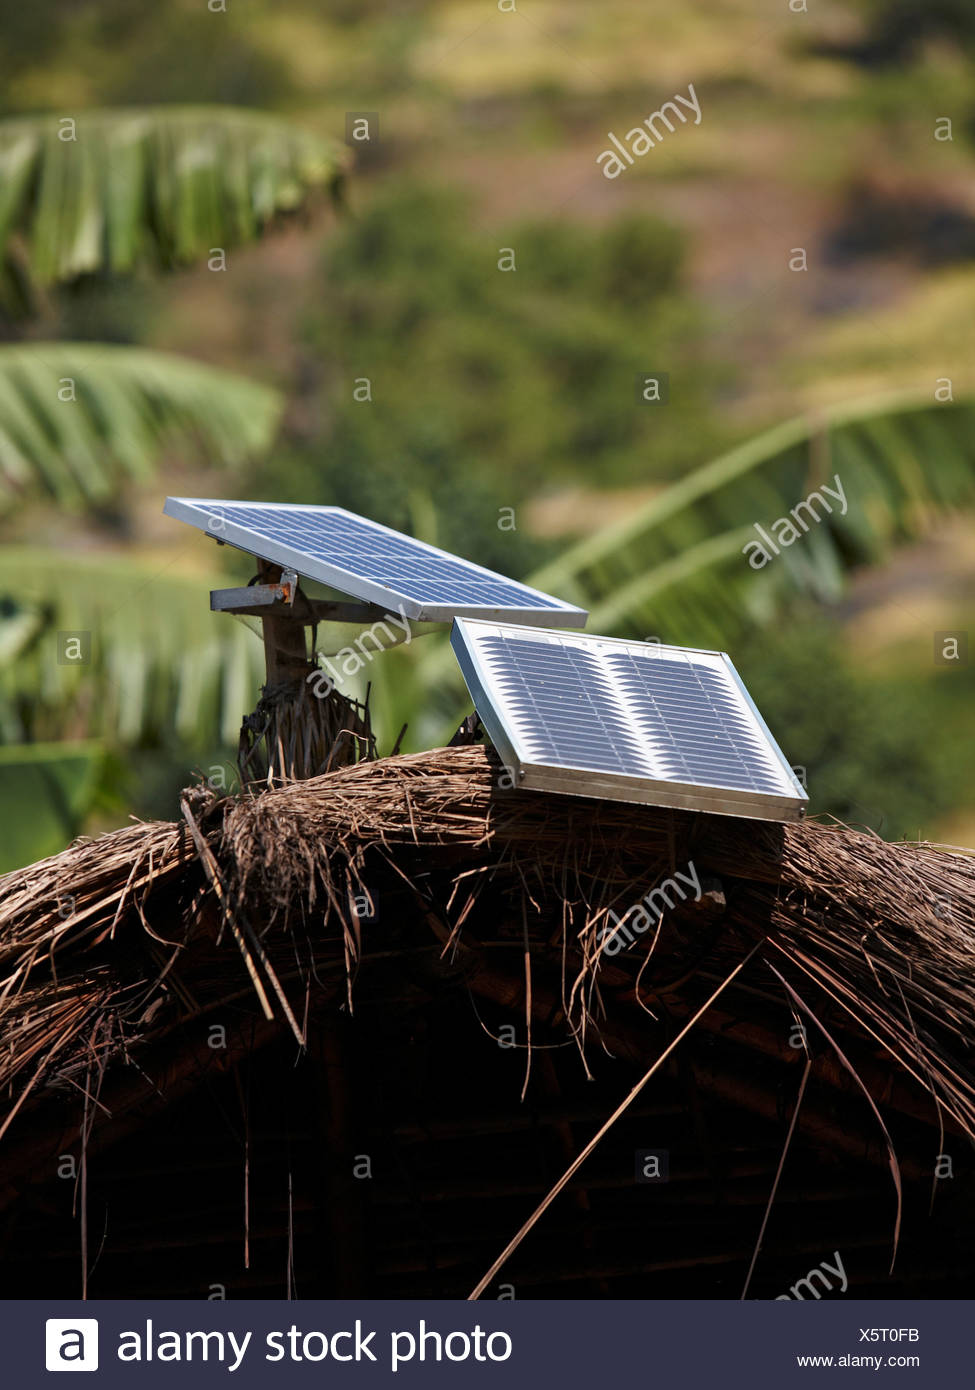 Small Solar Panels on Thatch Roof Huts - Stock Image